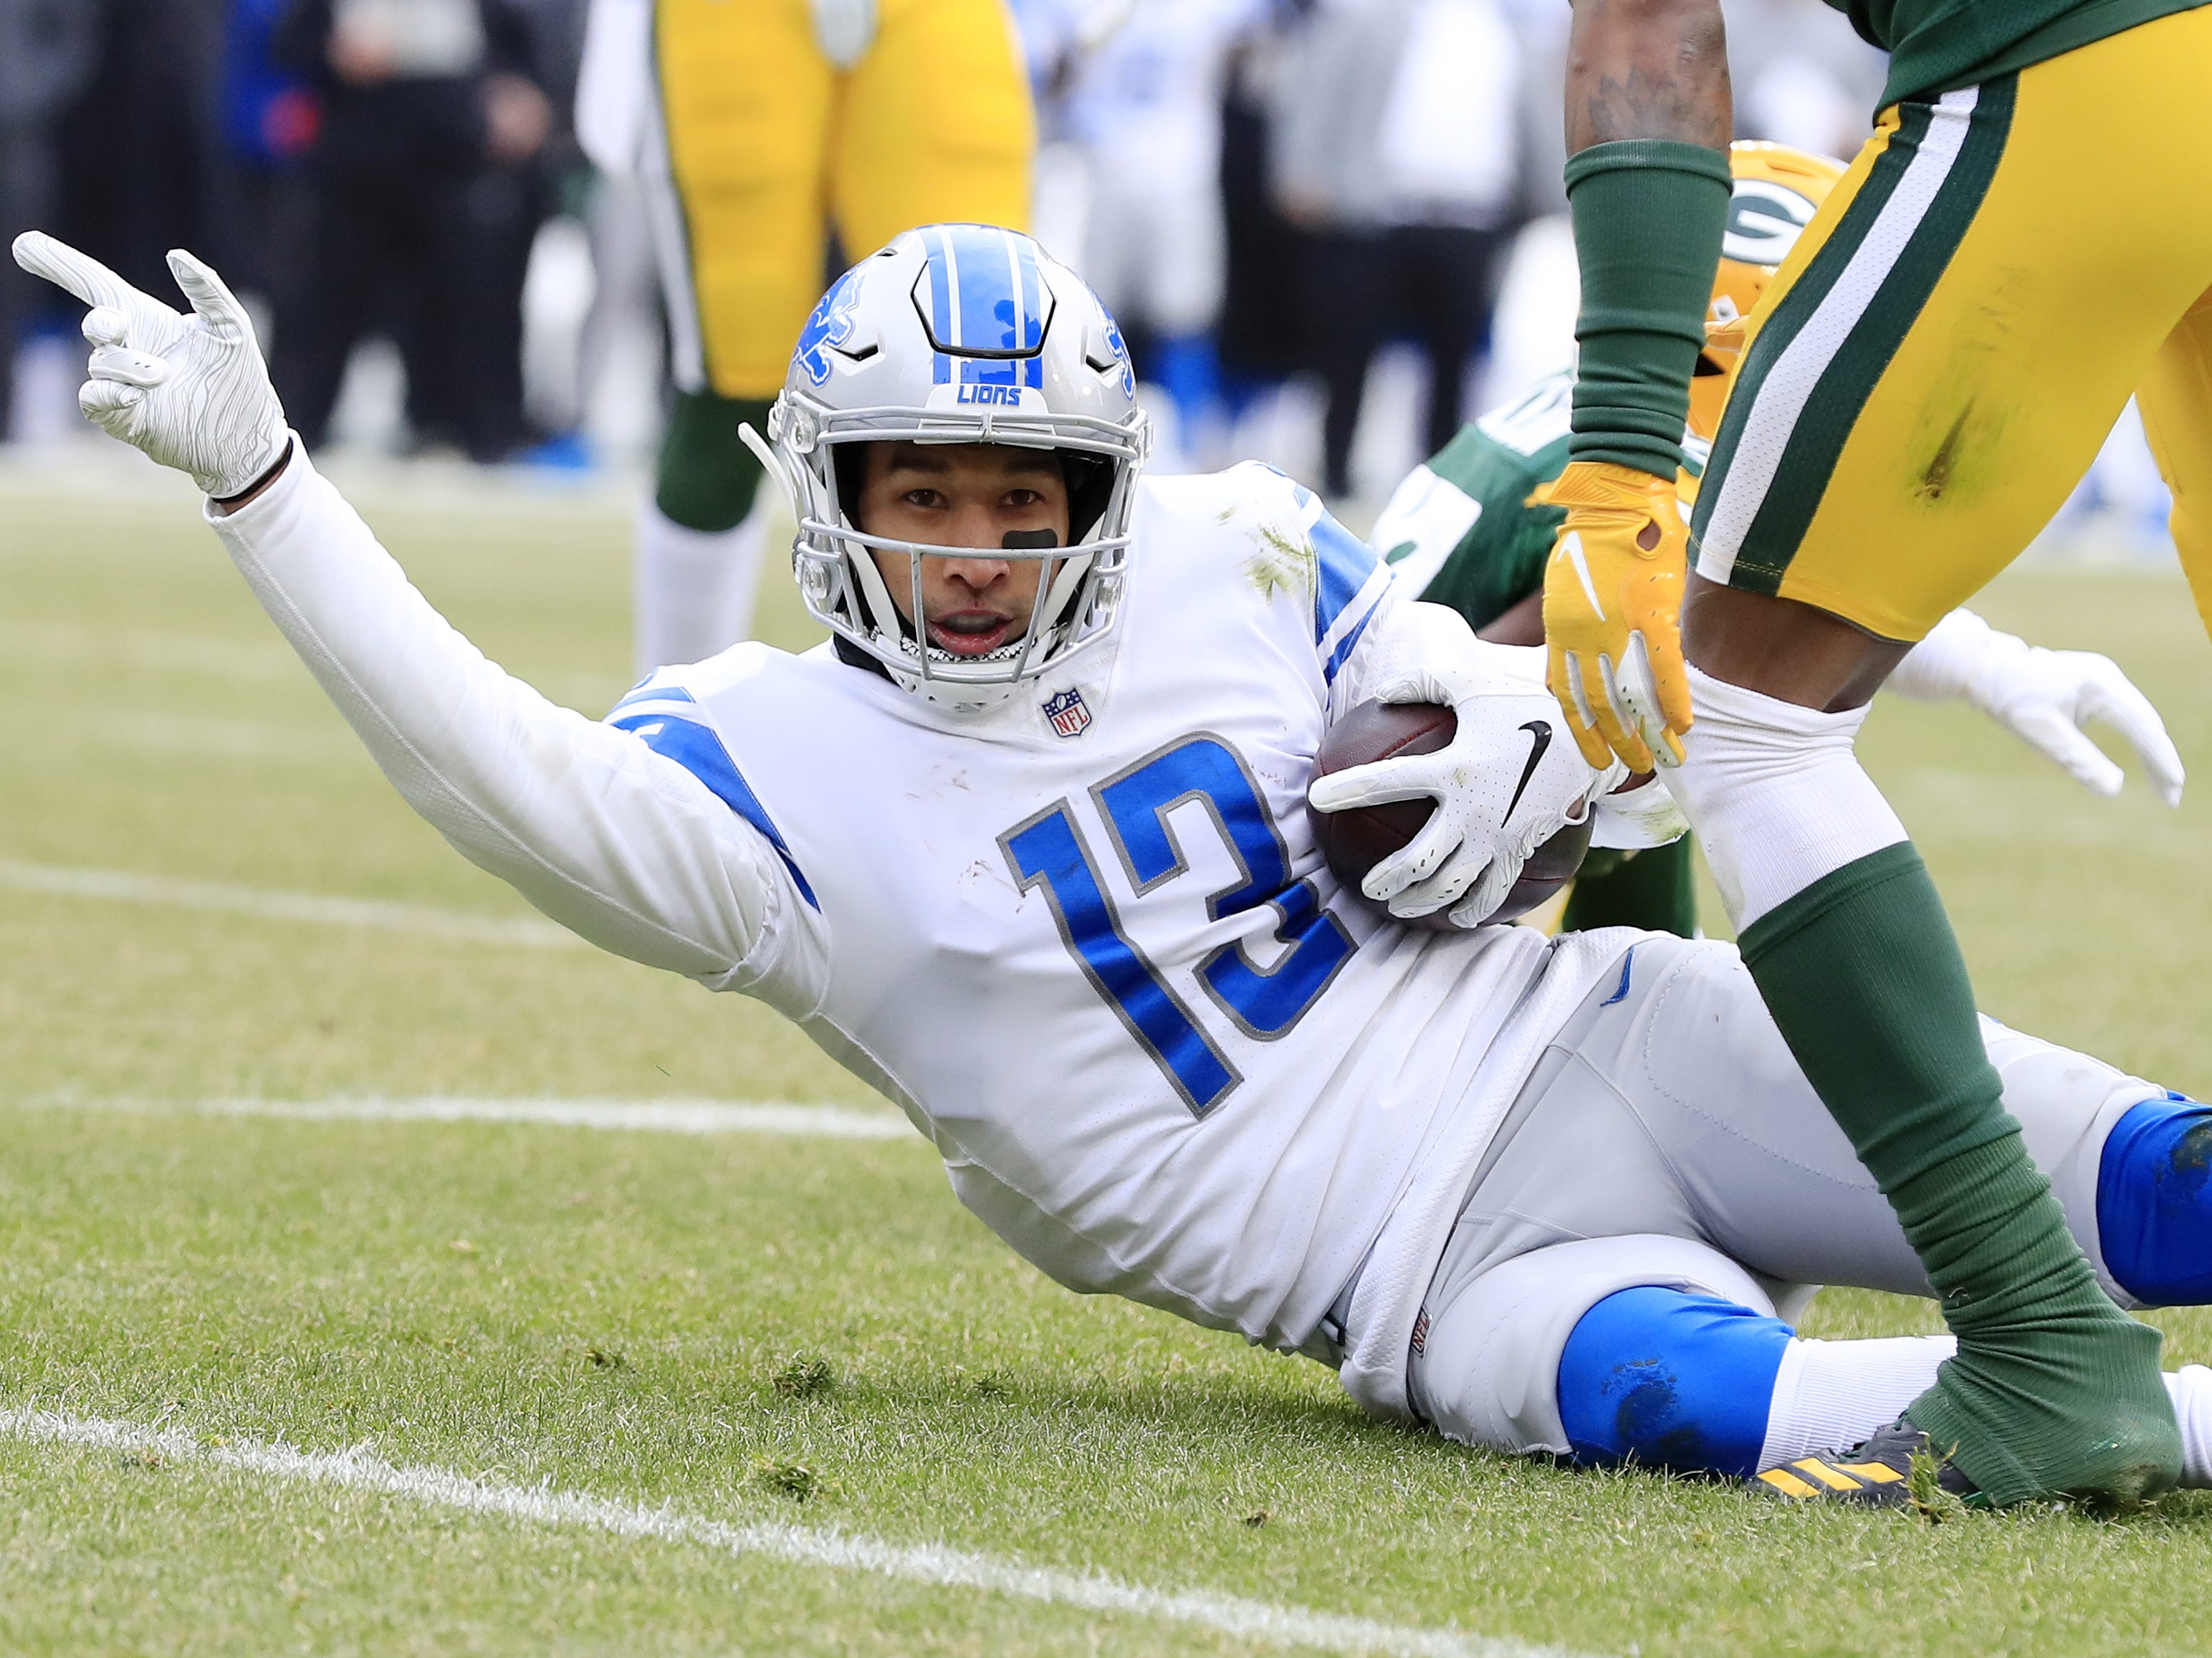 Detroit Lions wide receiver T.J. Jones (13) signals a first down in the first quarter against the Green Bay Packers at Lambeau Field on Sunday, December 30, 2018 in Green Bay, Wis. Adam Wesley/USA TODAY NETWORK-Wis